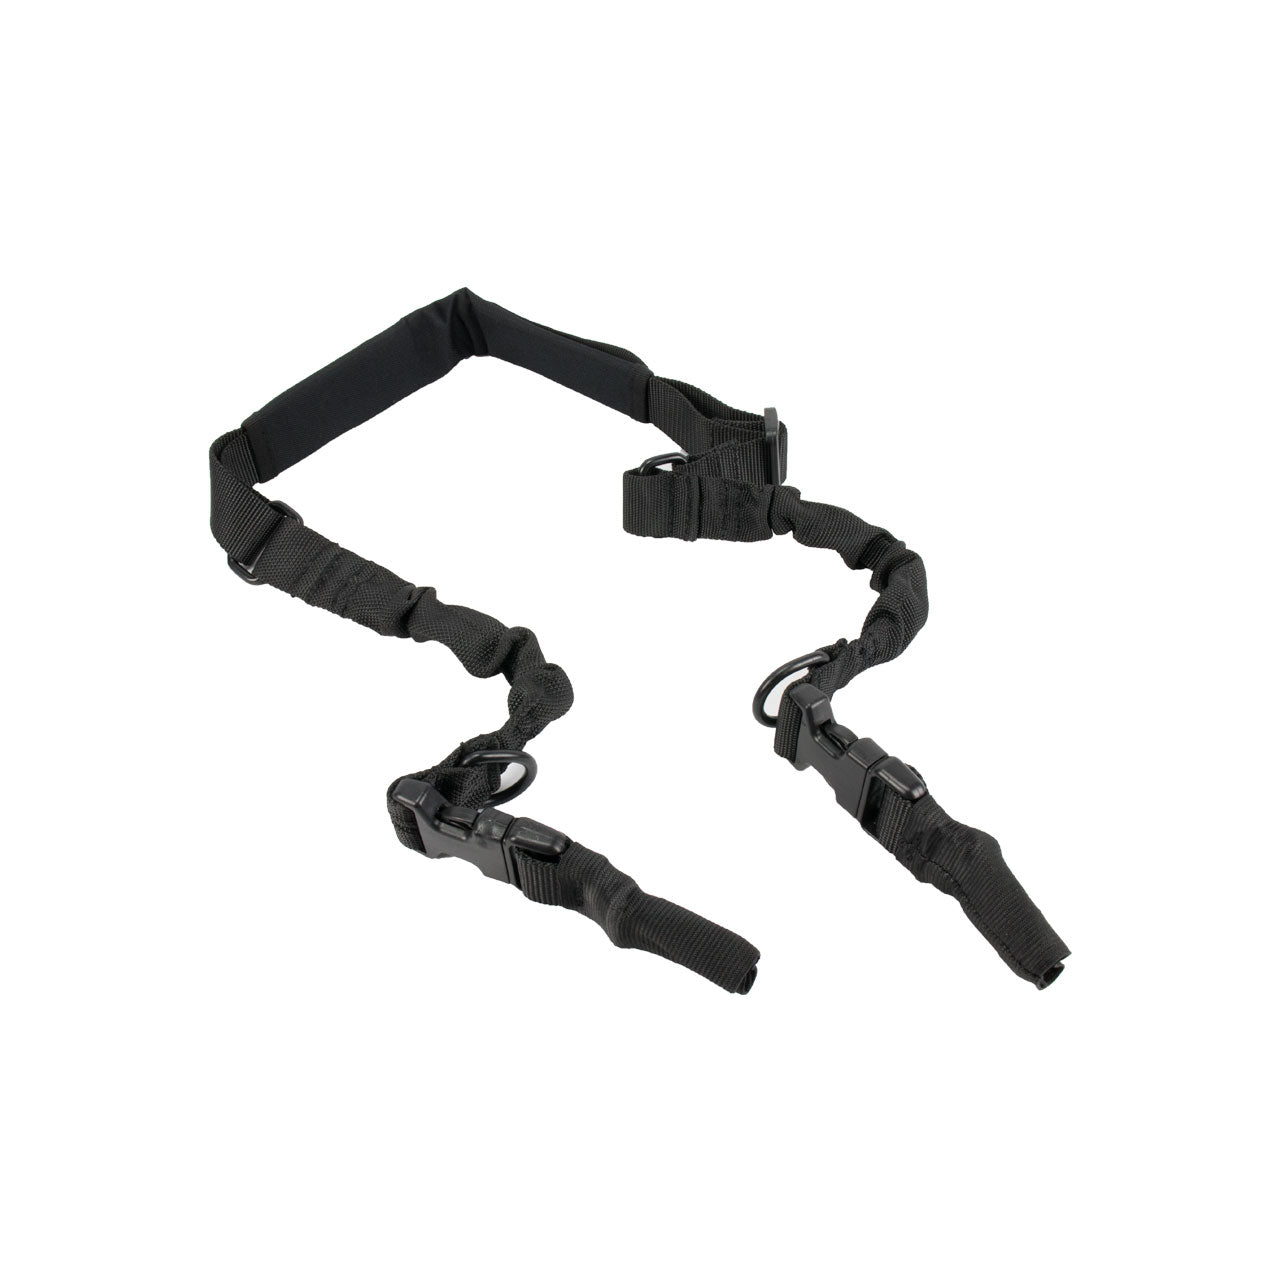 2-to-1 Point QD Tactical Rifle Sling - Black